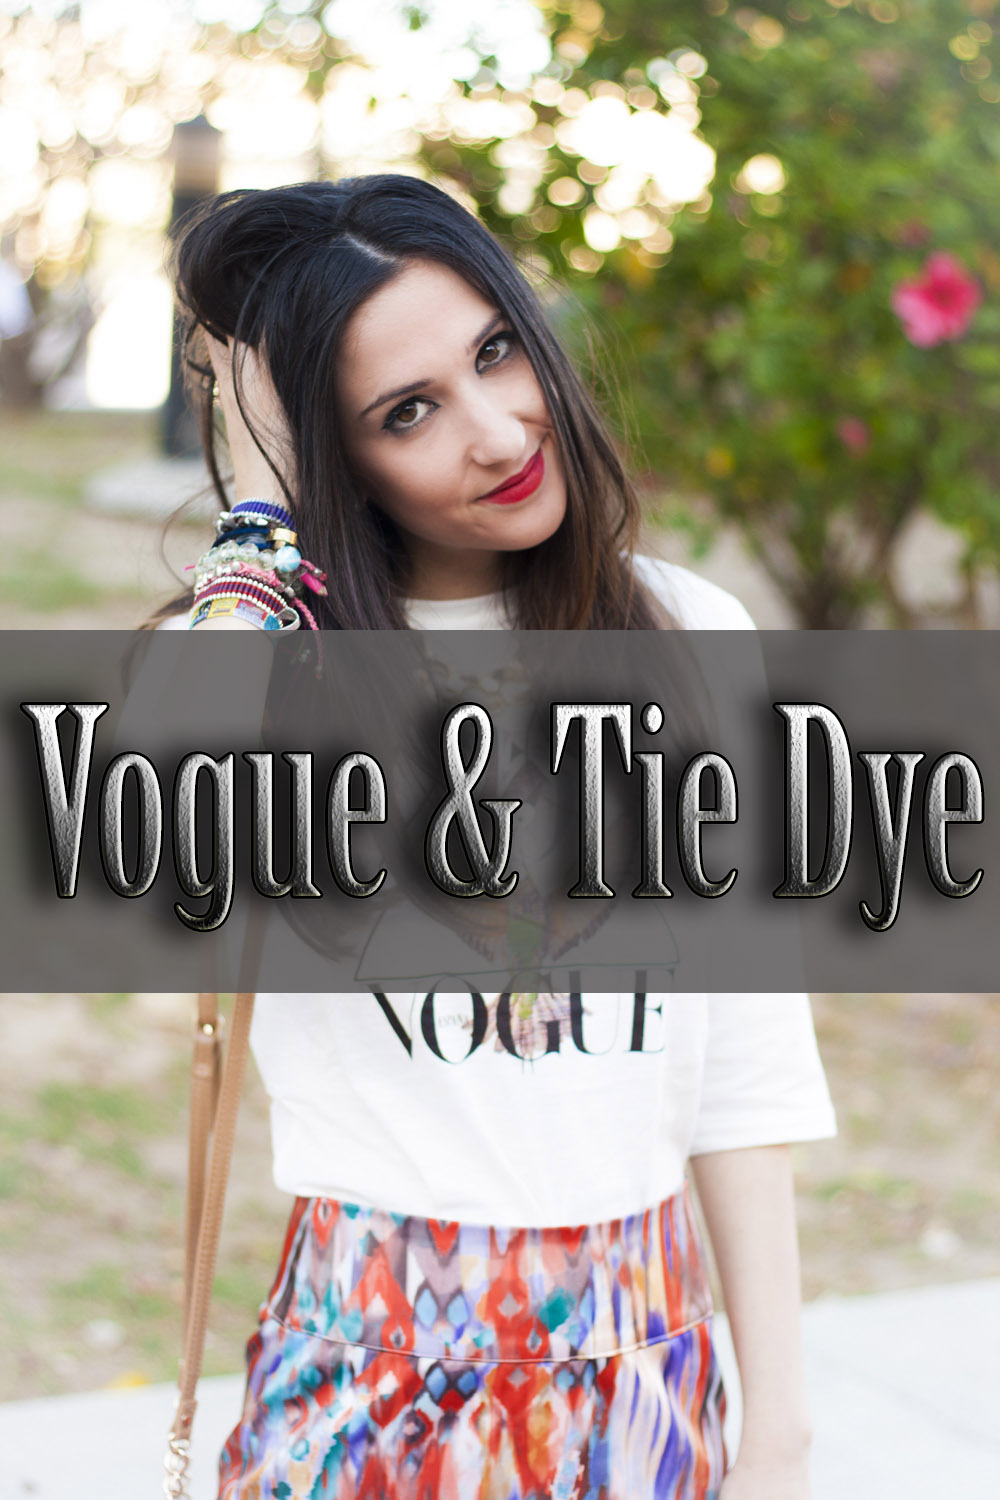 Vogue and Tie dye